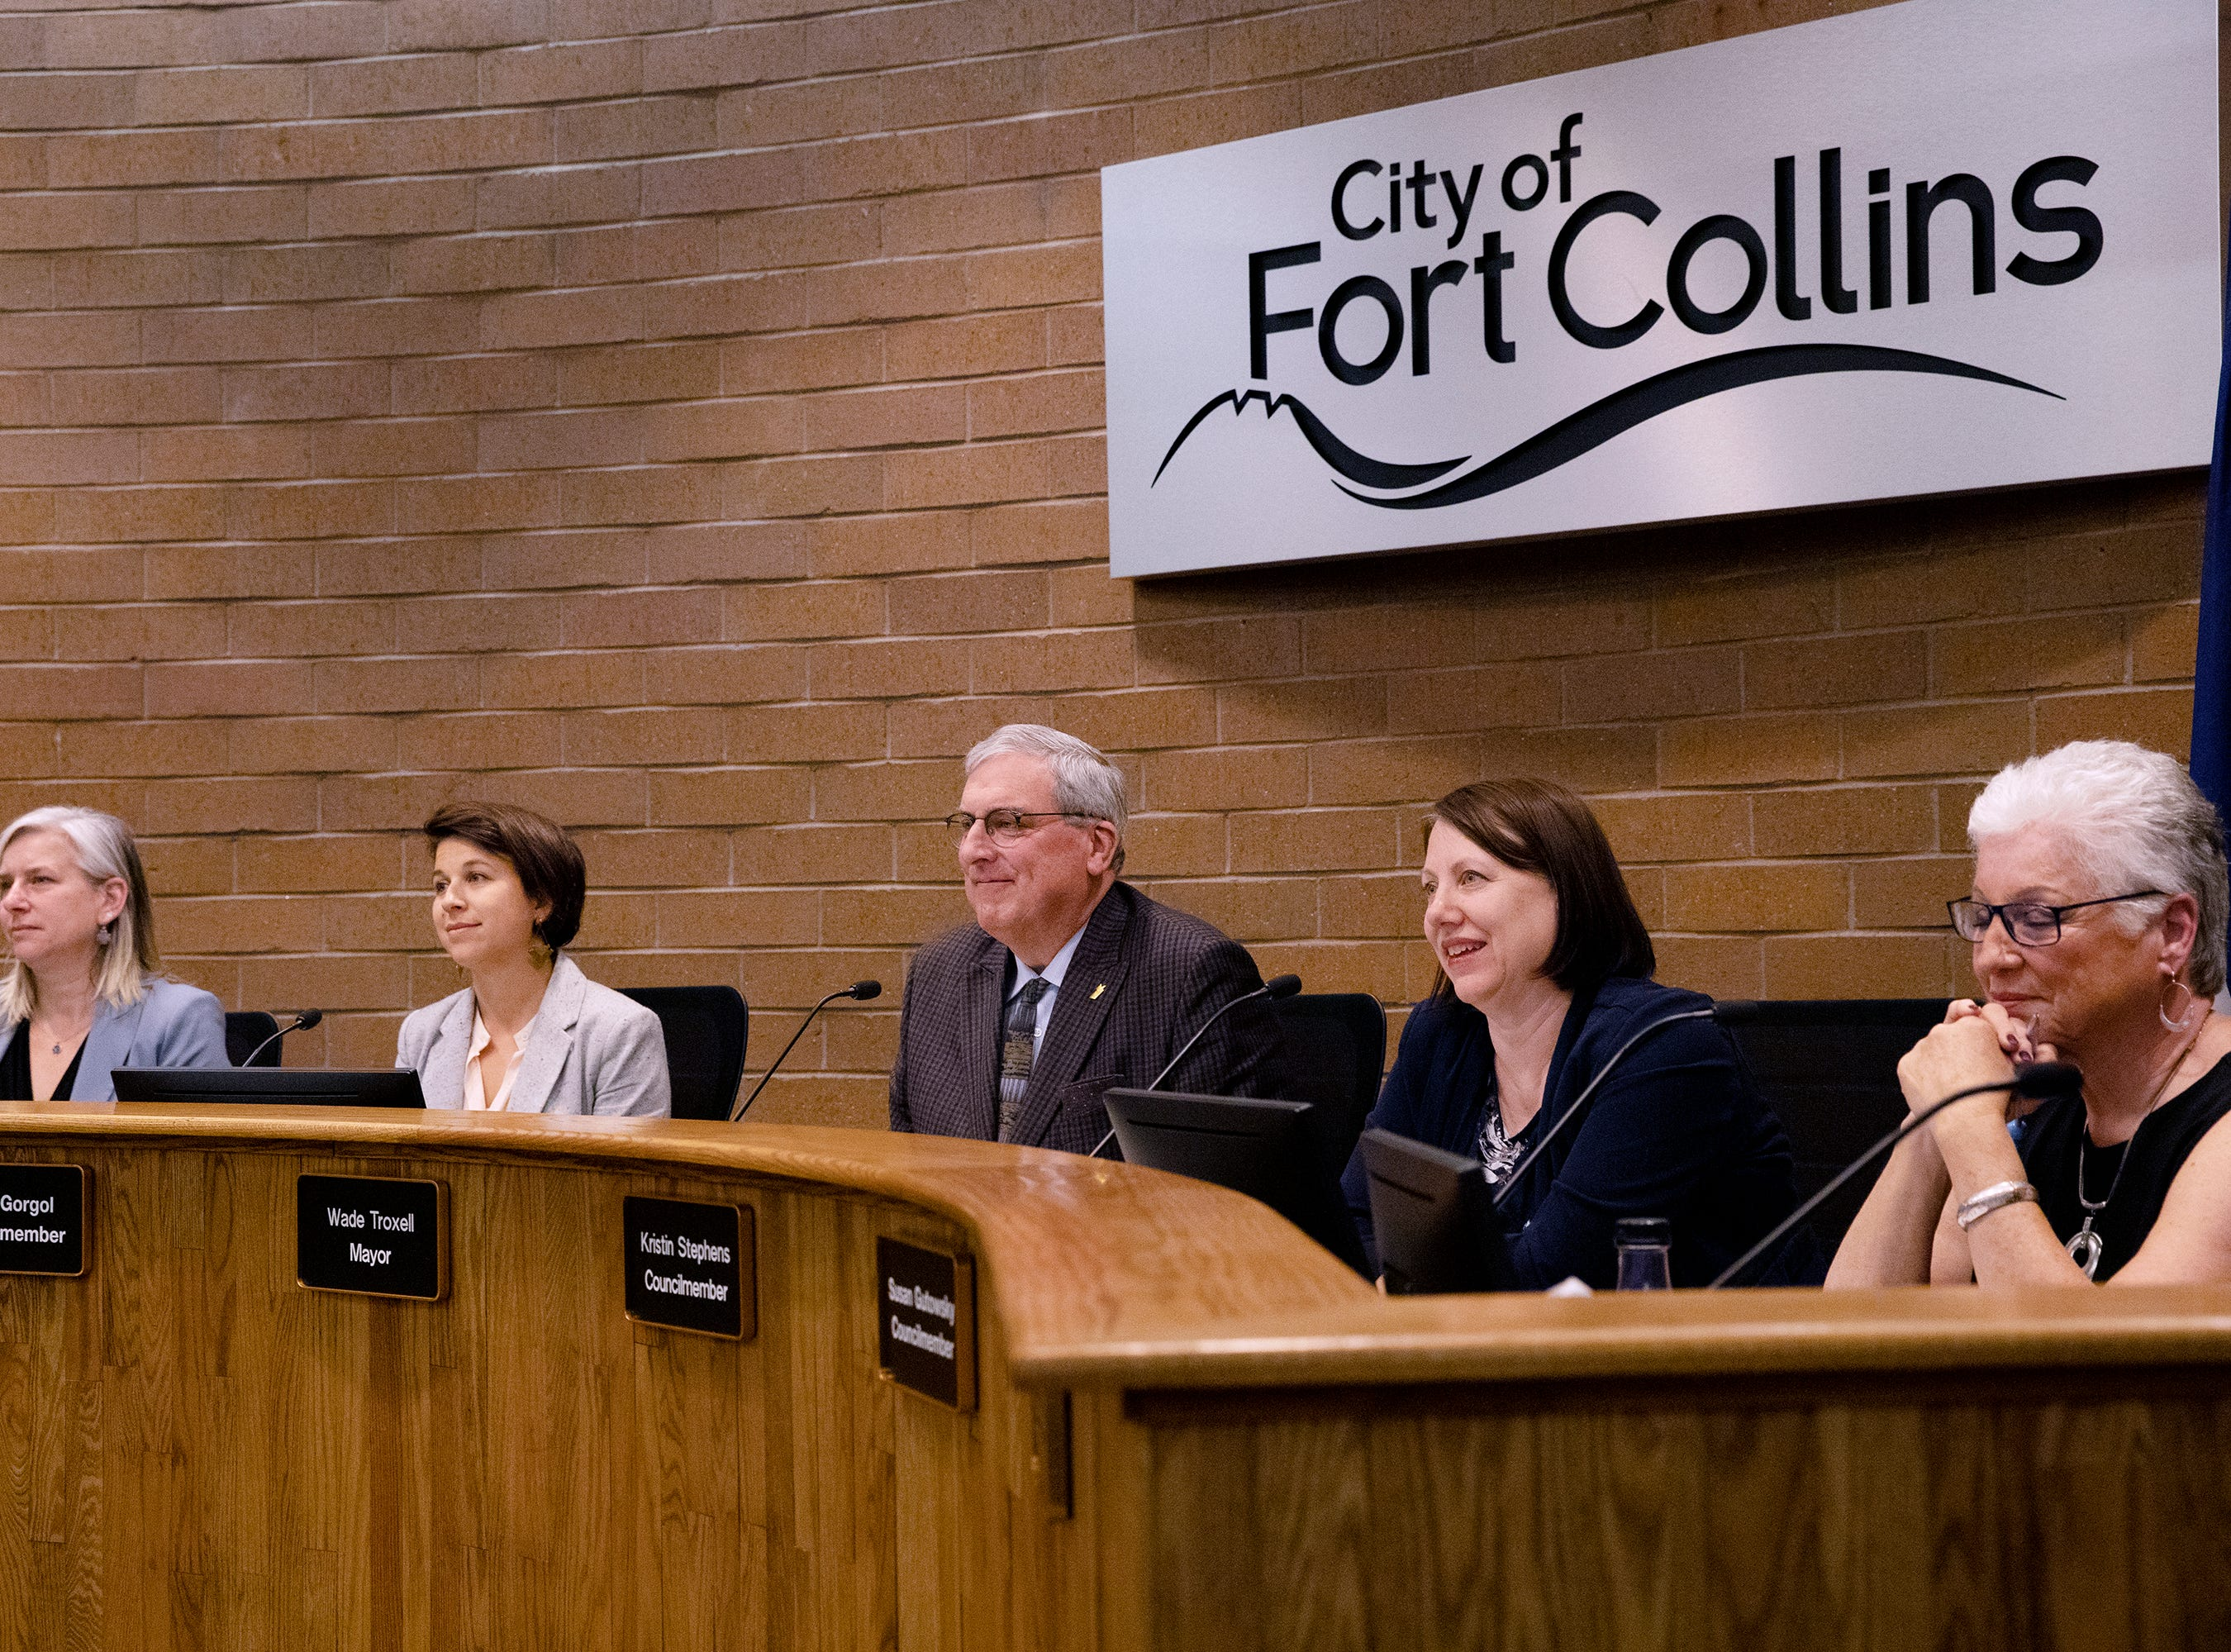 From left, council members Julie Pignataro, Emily Gorgol, Mayor Wade Troxell, Kristin Stephens and Susan Gutowsky take to the bench Tuesday, April 23 at City Hall. Not pictured are council members Ken Summers and Ross Cunniff.